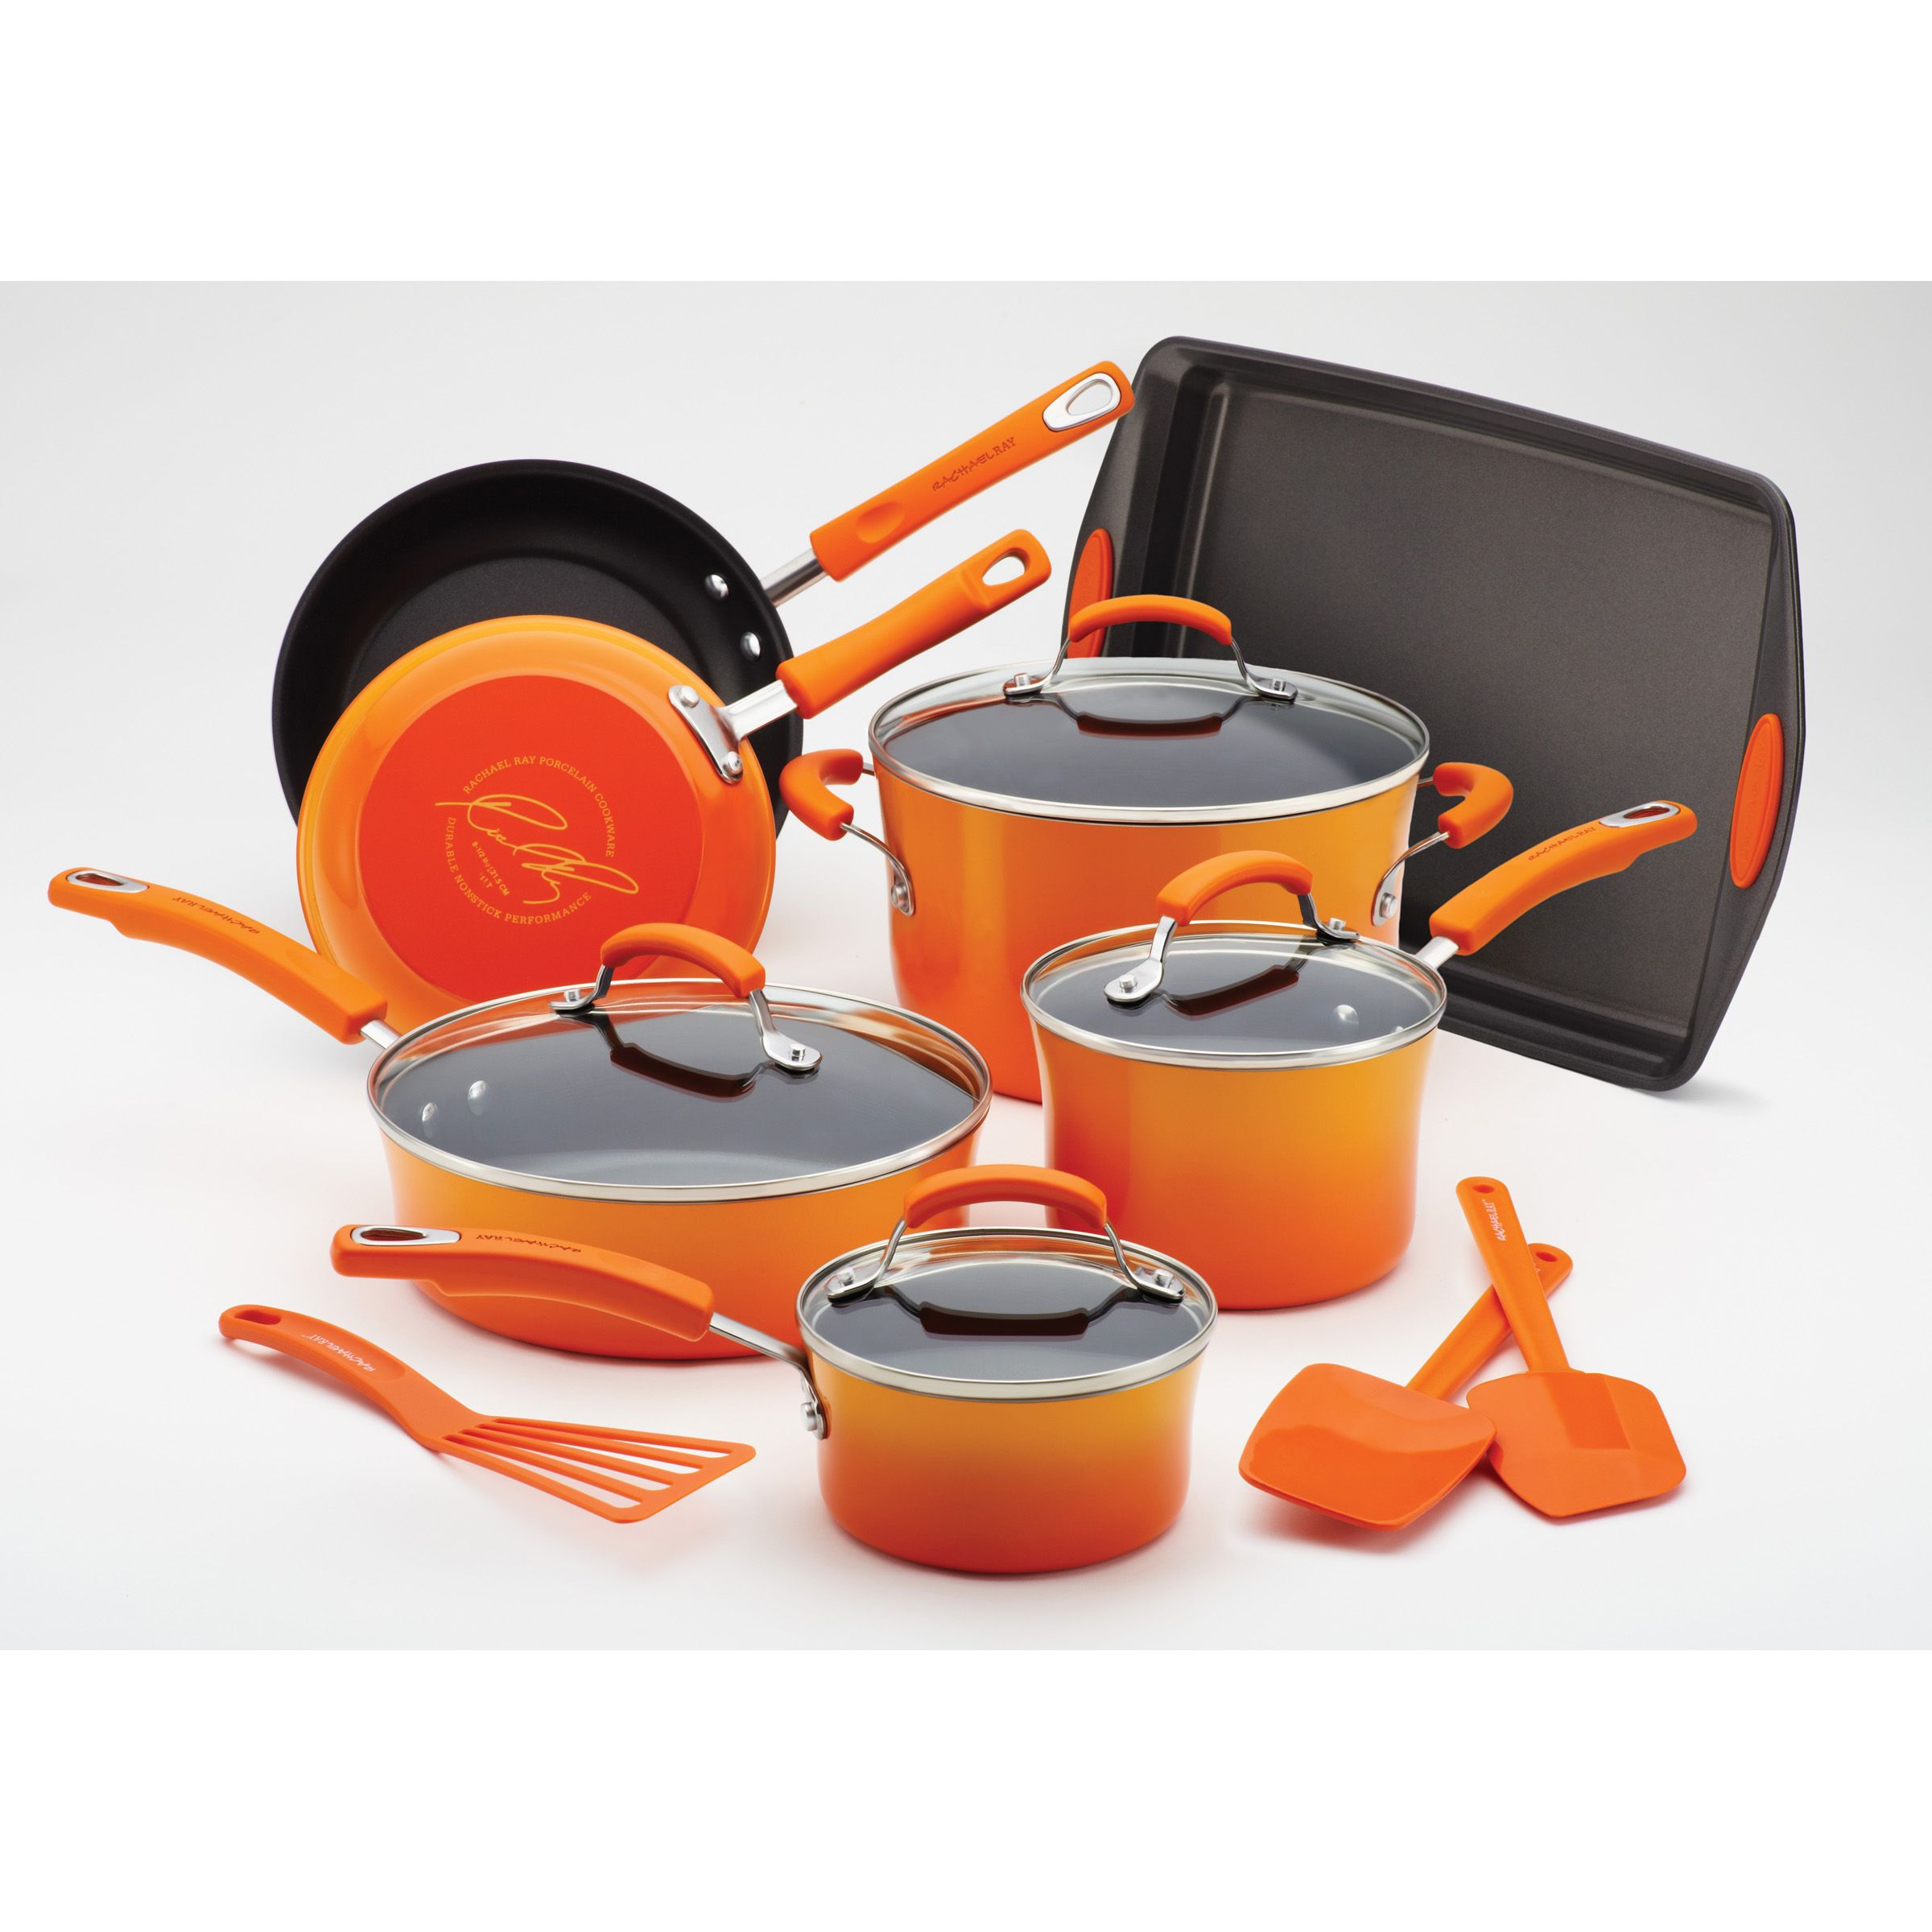 Colored pots and pans set thinking orange green blue for Kitchen set orange